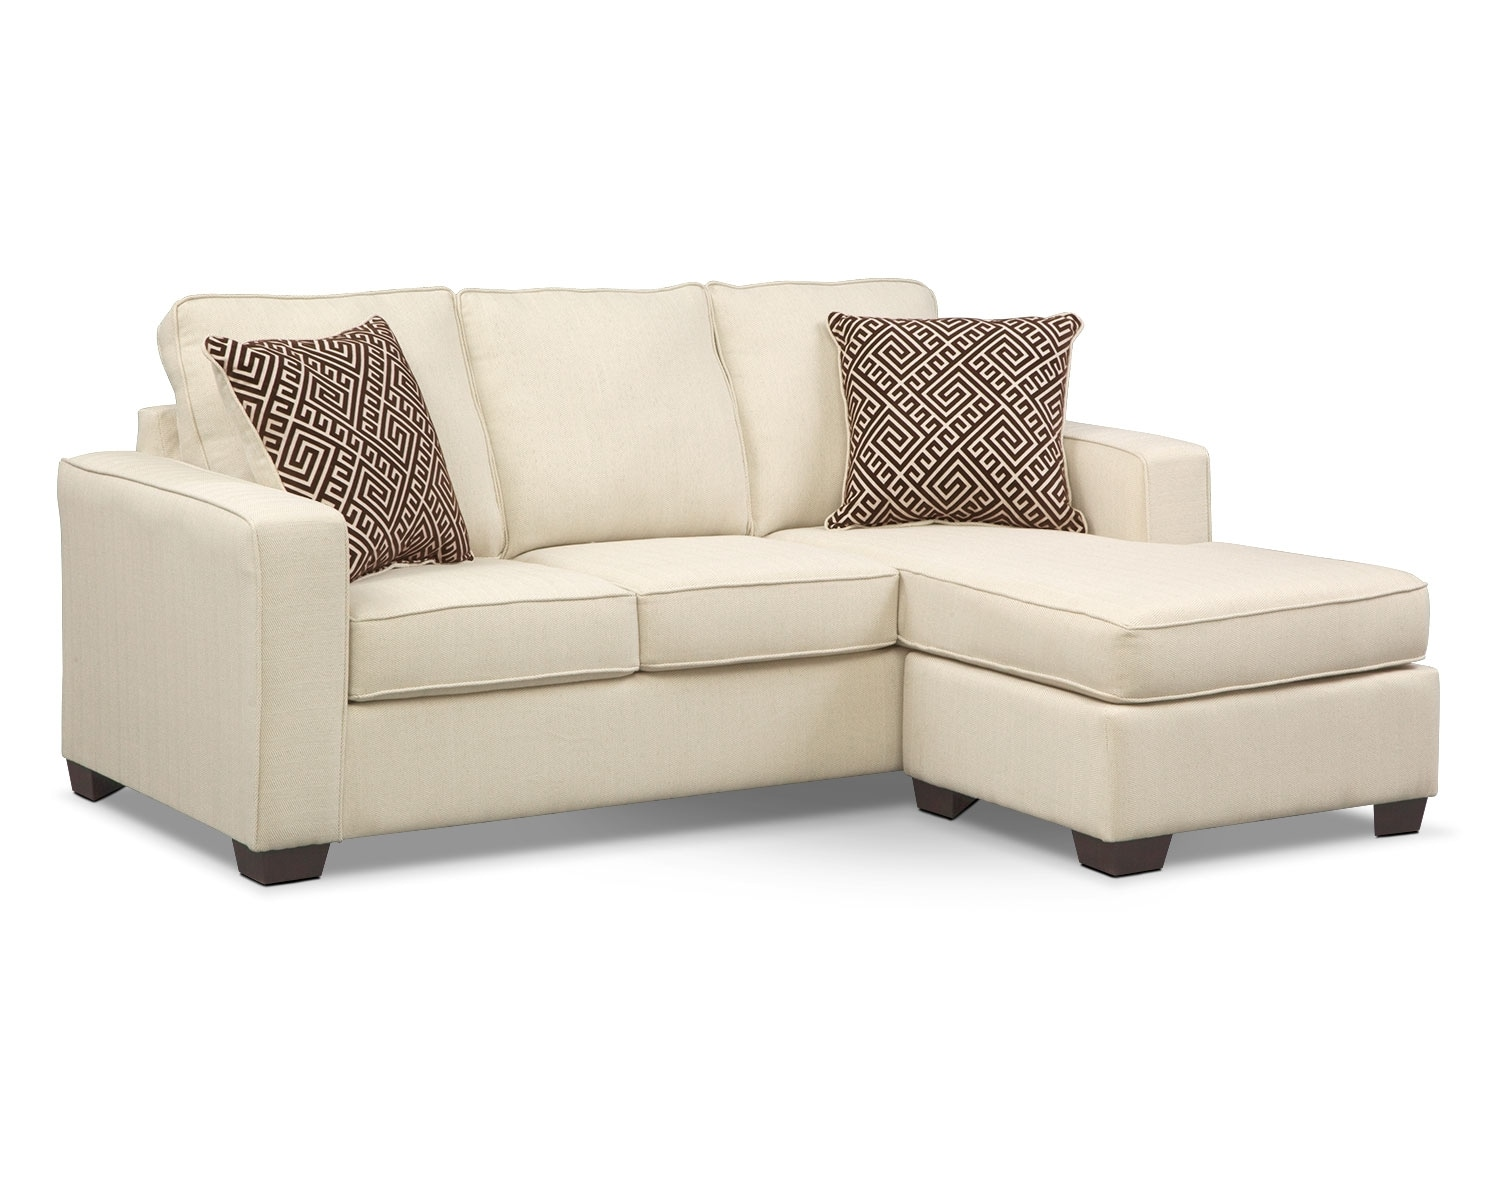 The Sterling Beige Sleeper Sofa Collection